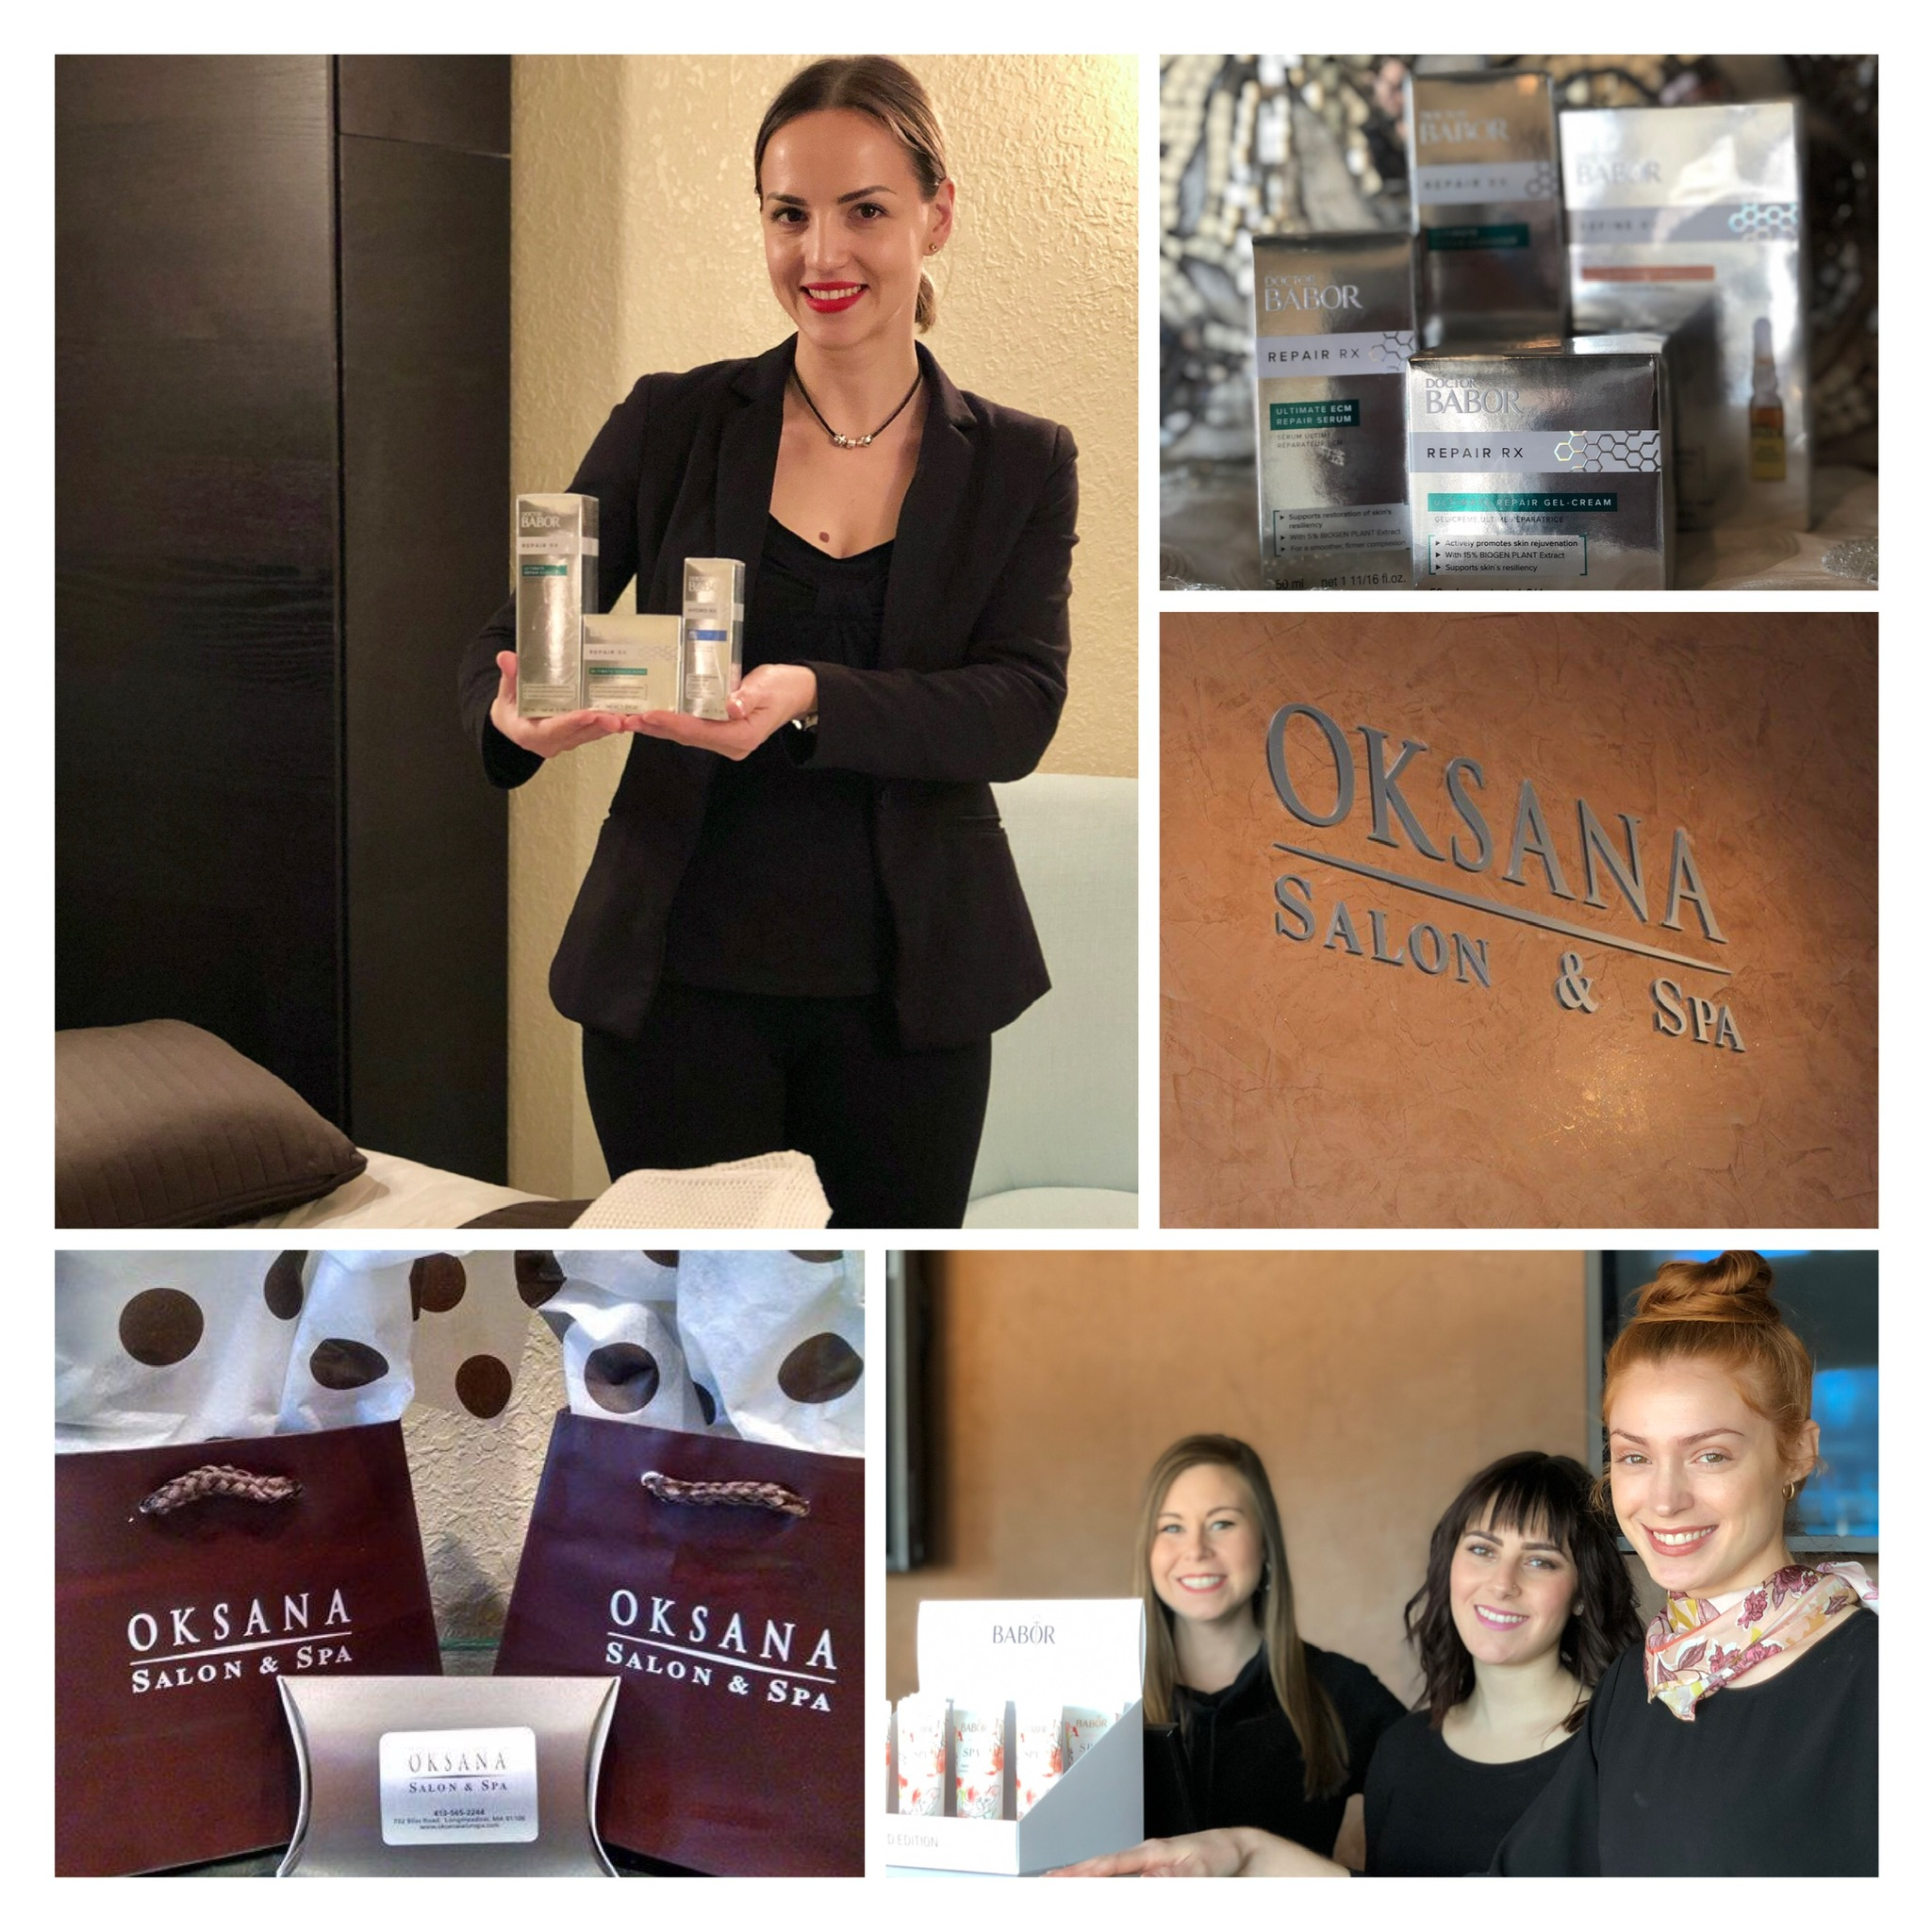 Oksana Salon & Spa